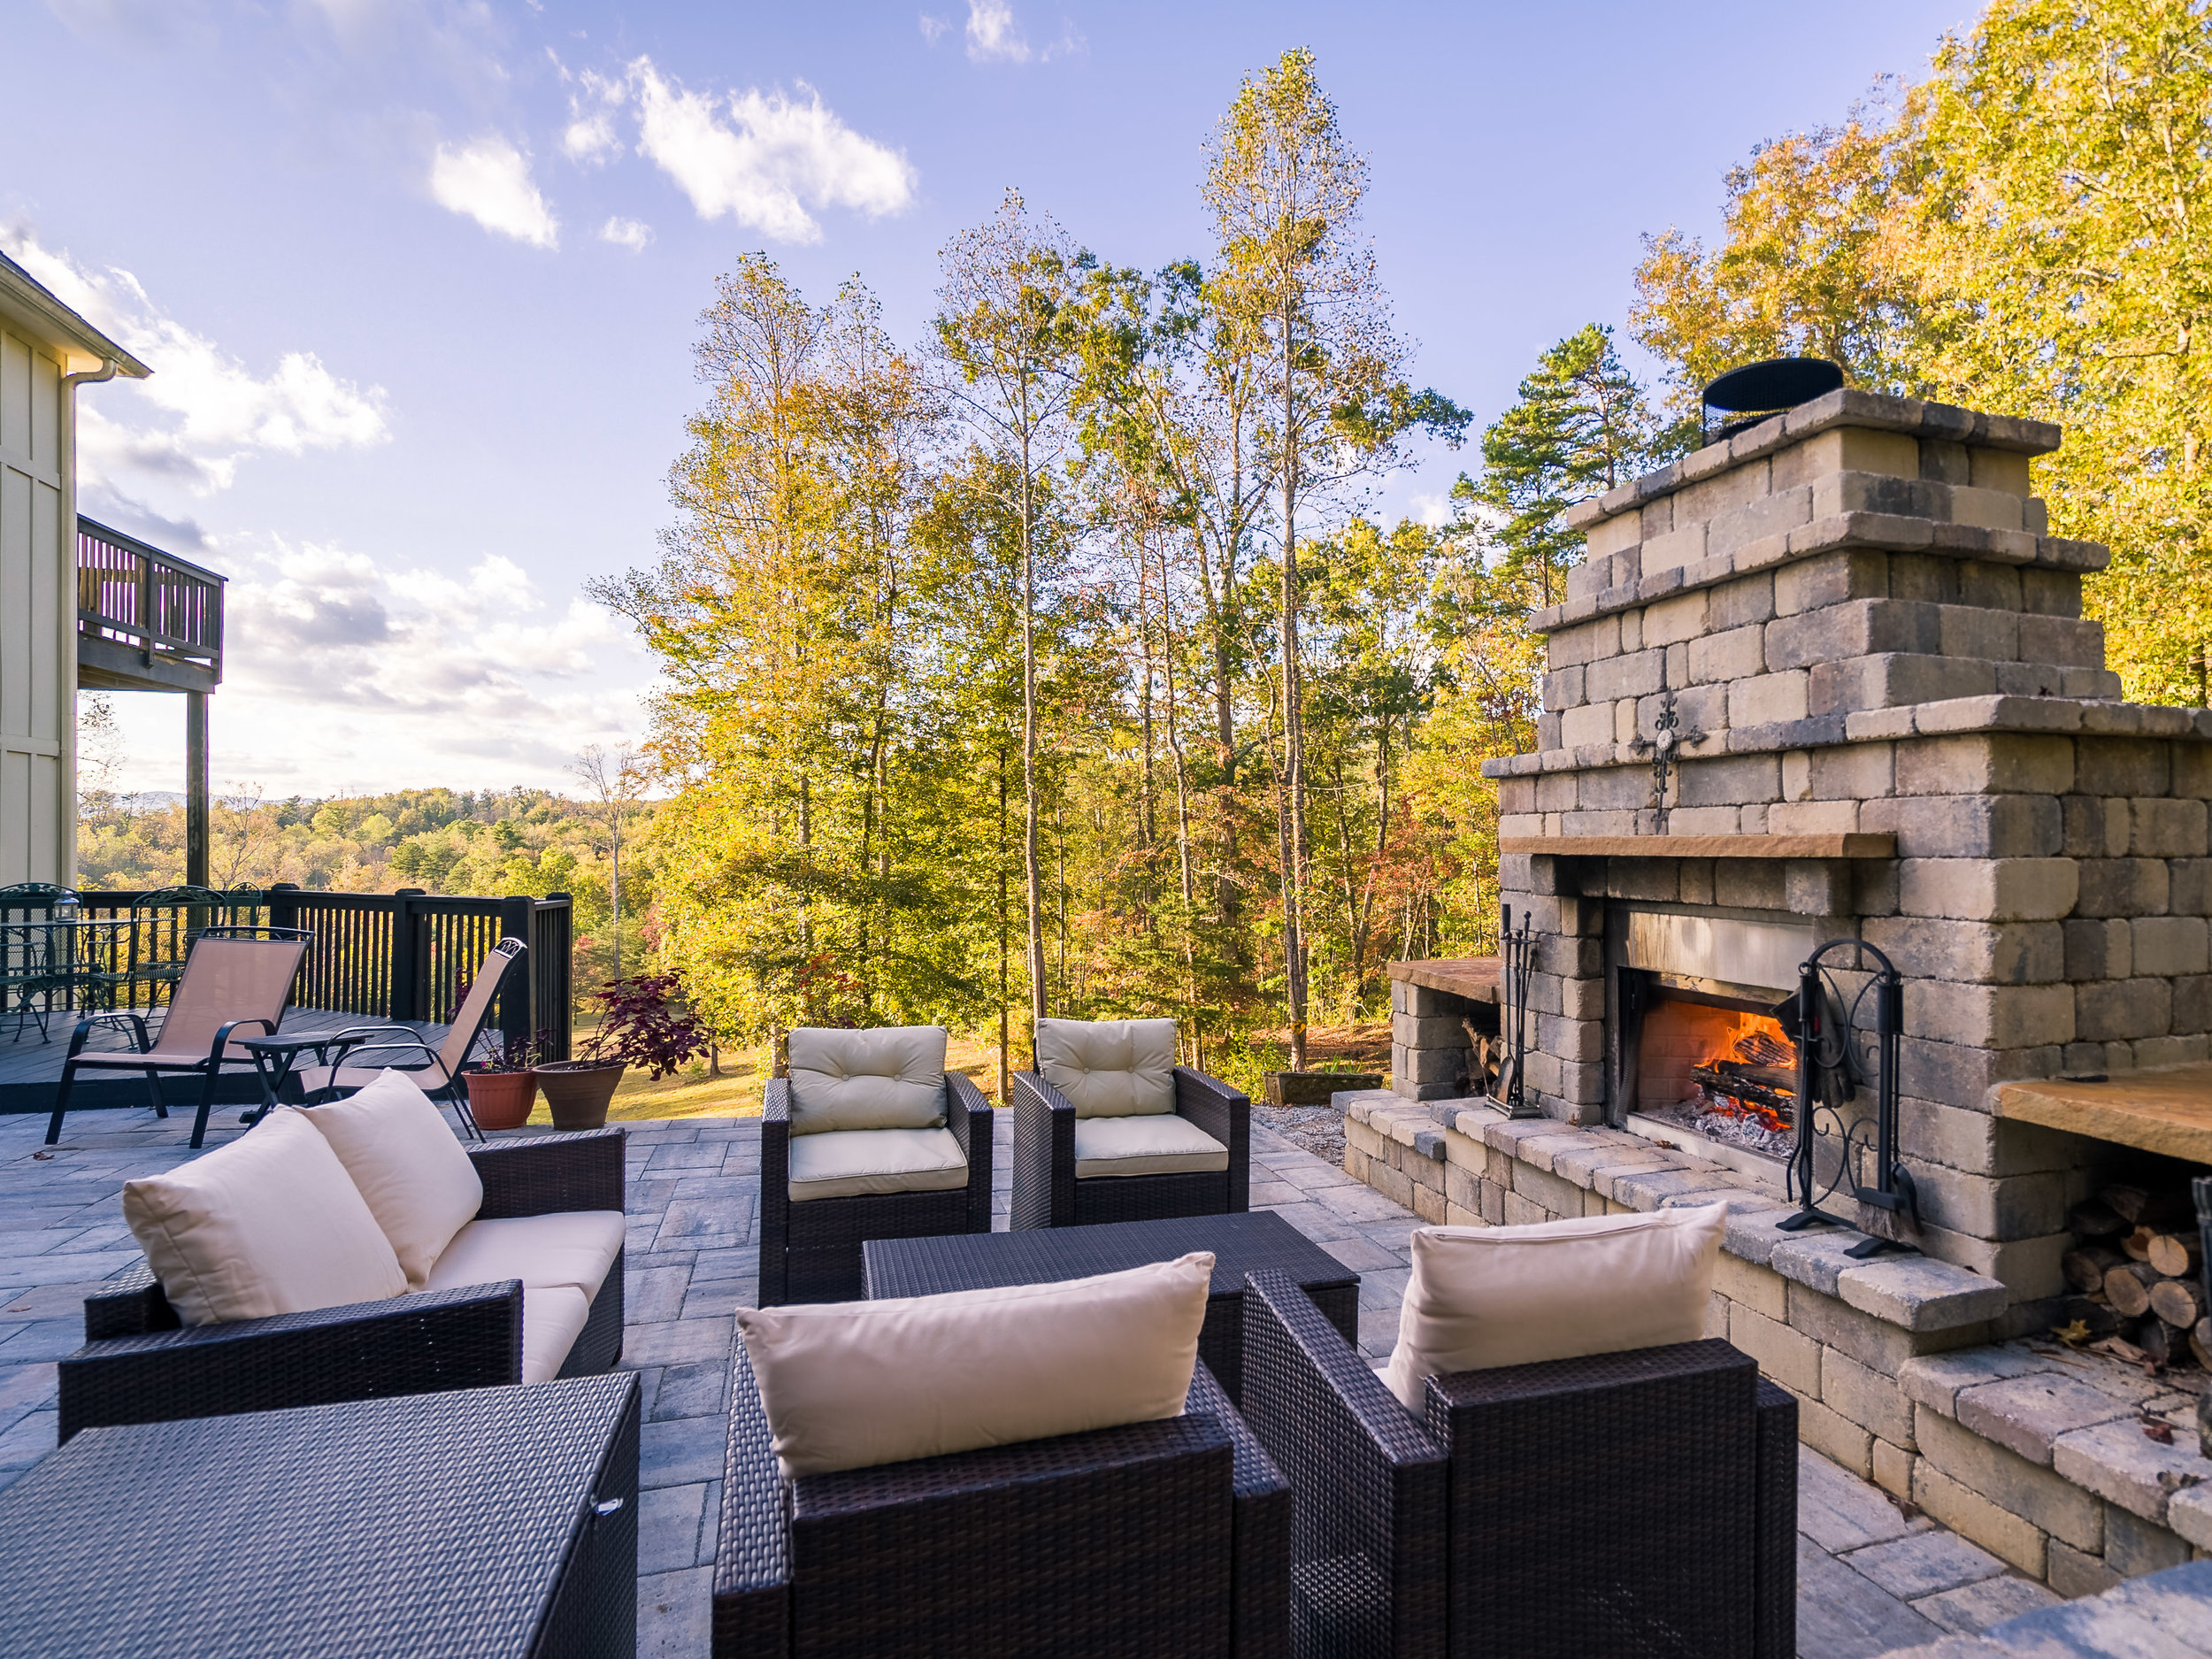 Importance of Outdoor Fireplace Safety in Wilmette, IL